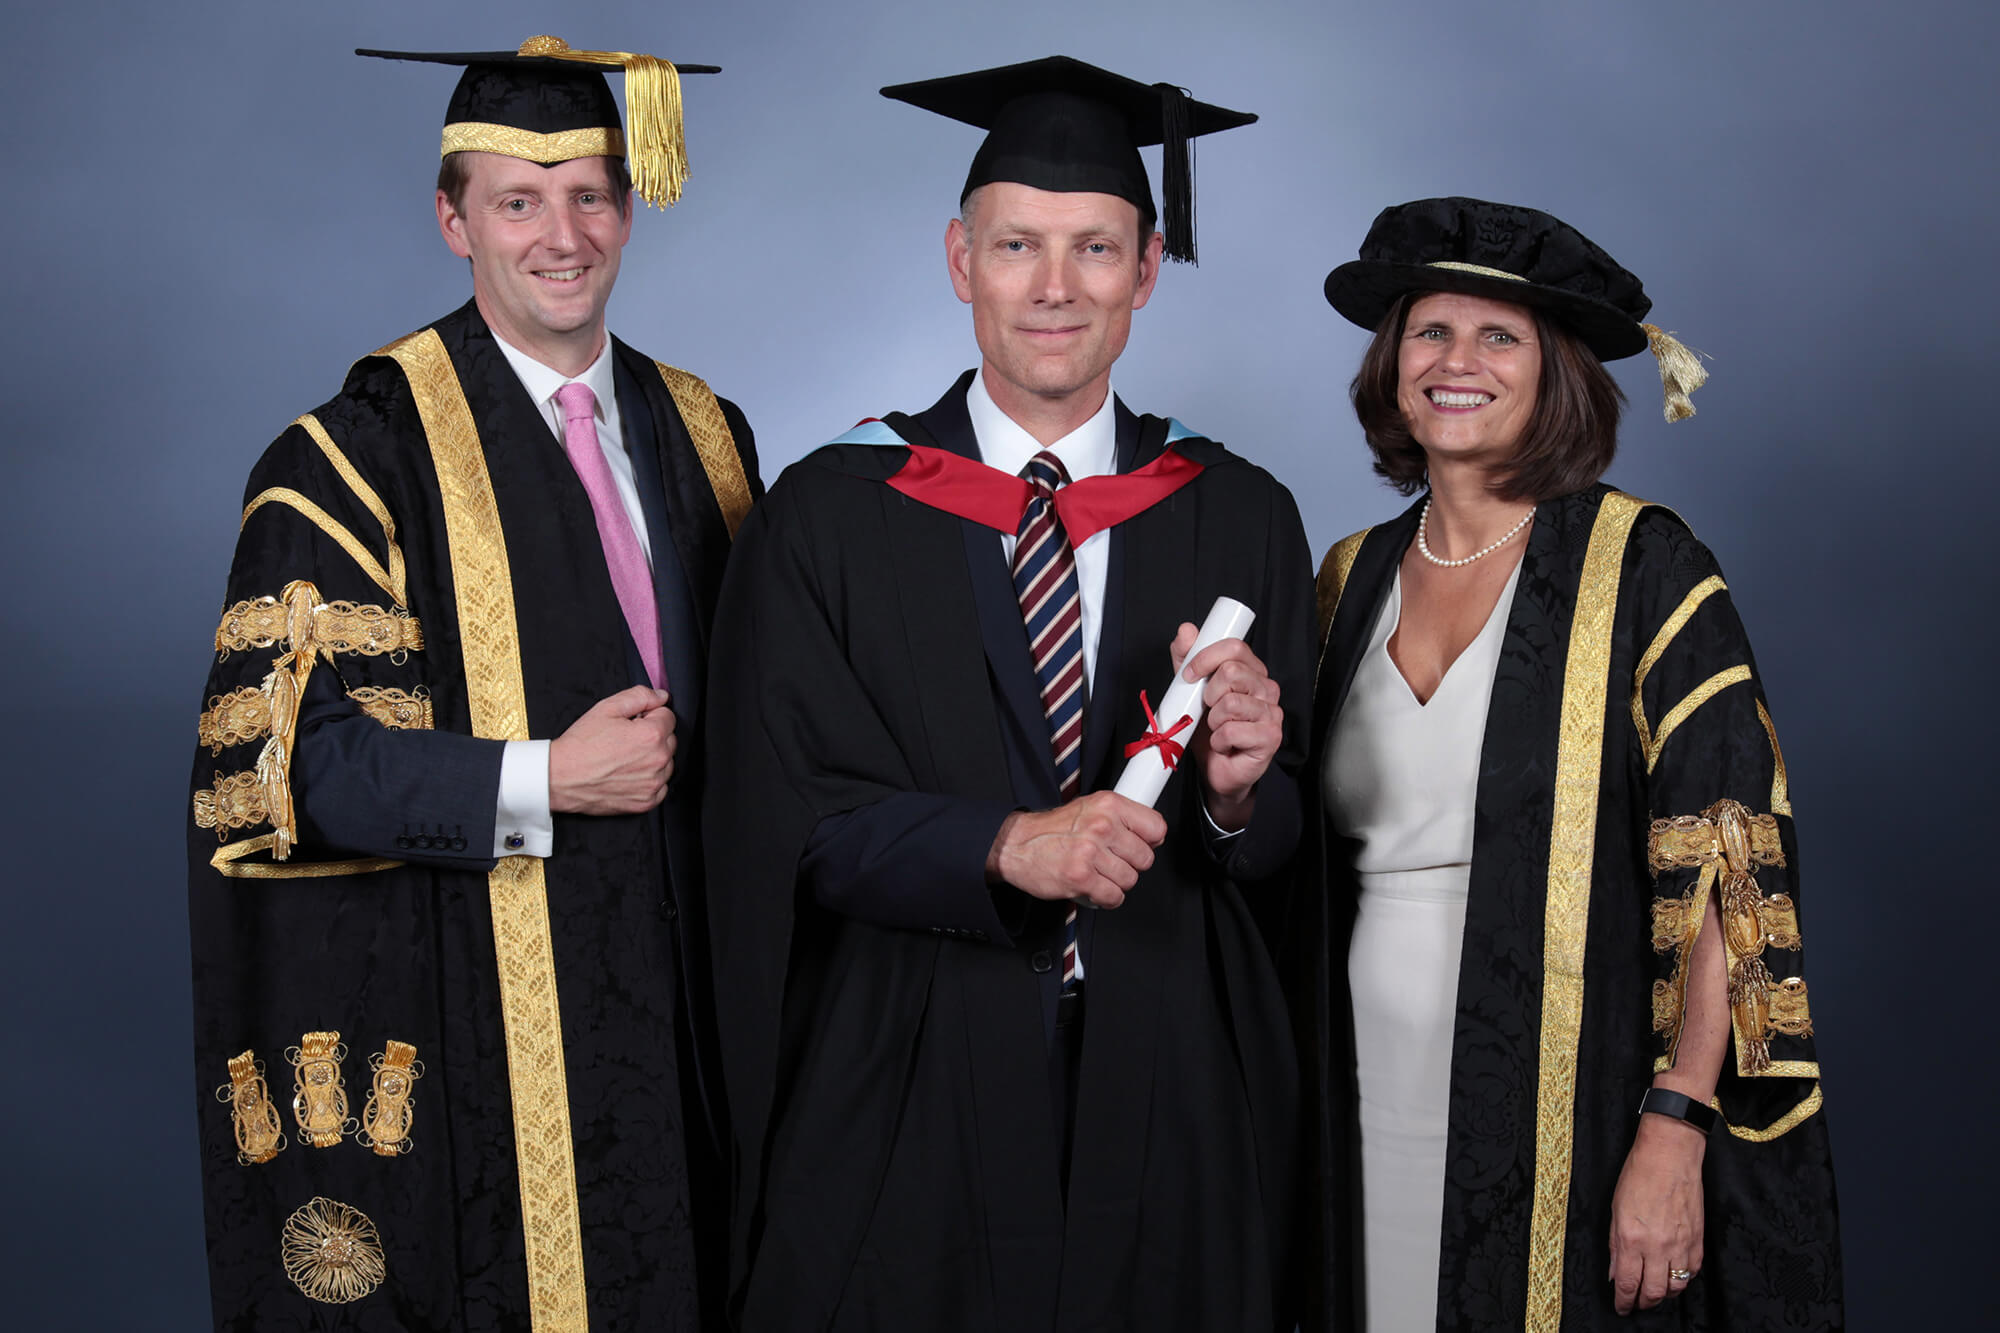 Robin Gillespie graduation photo with Vice Chancellor Kath Mitchell